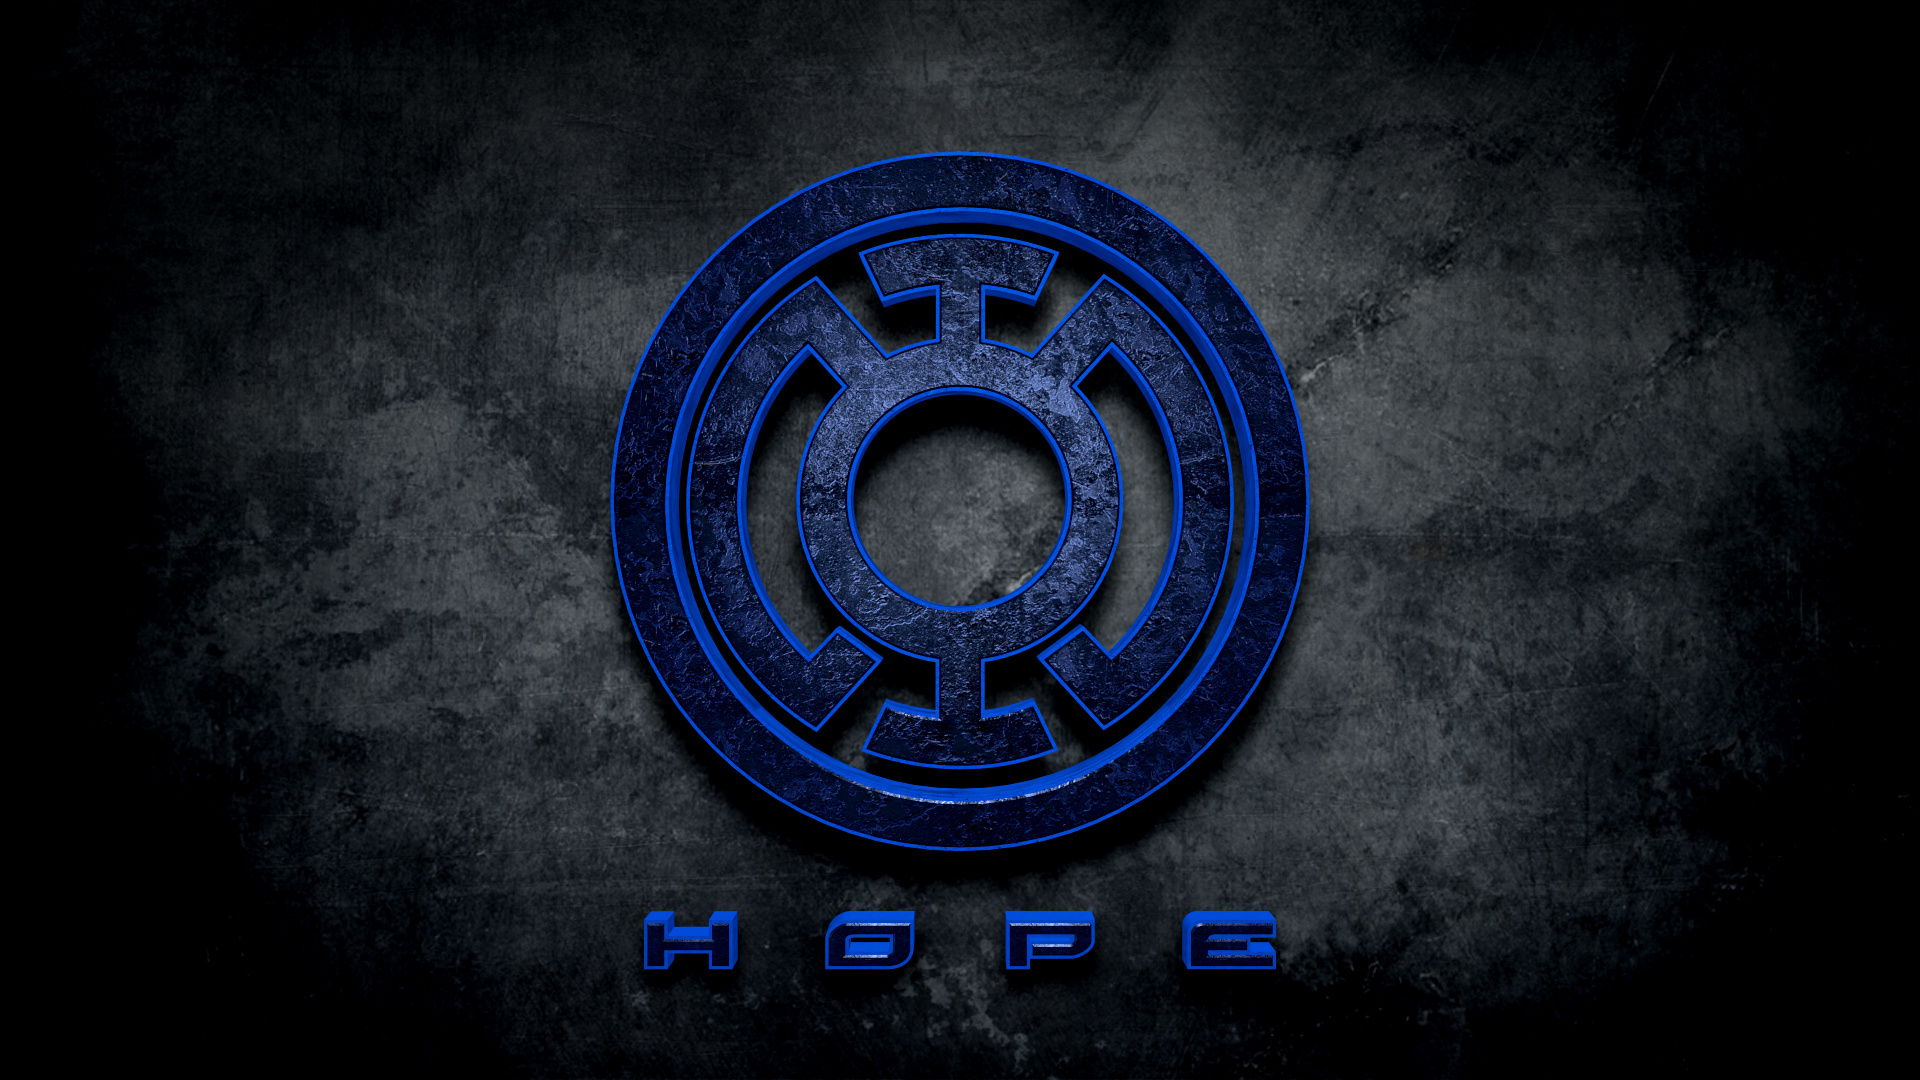 Blue Lantern Corps Full HD Wallpaper And Background Image